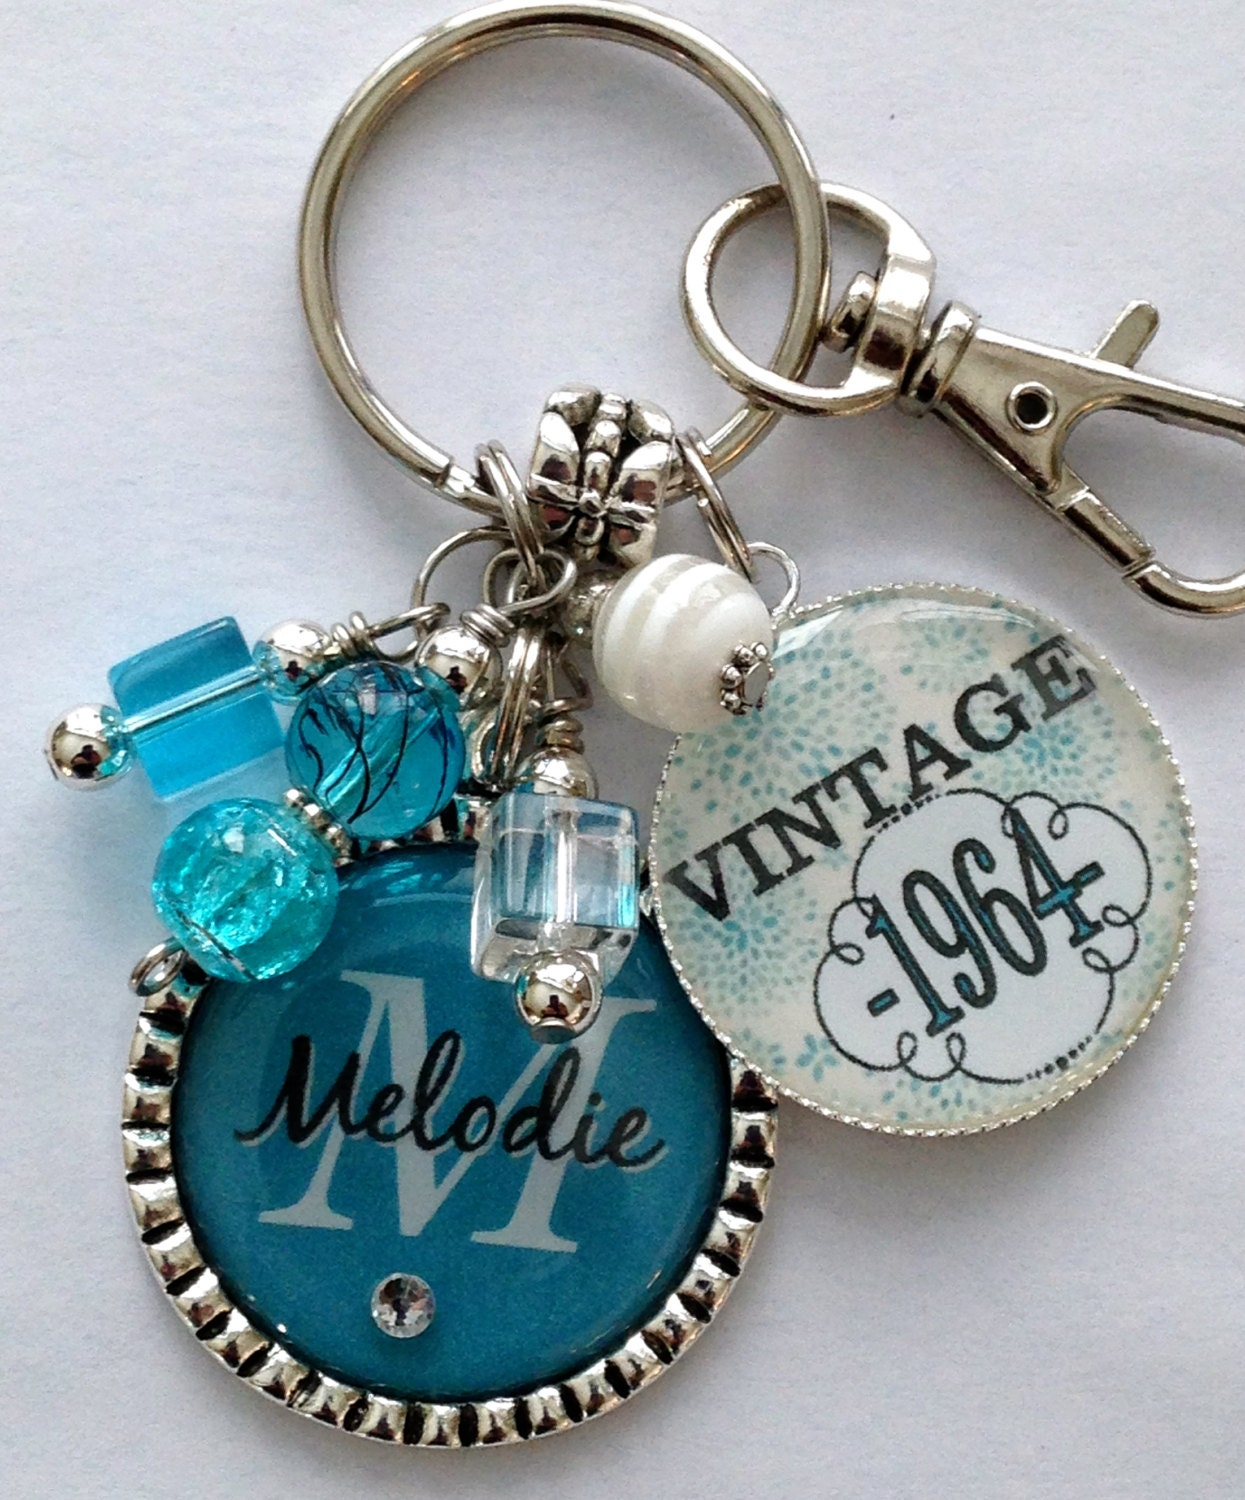 50th Birthday Gift Keychain Vintage Personalized Name Mother